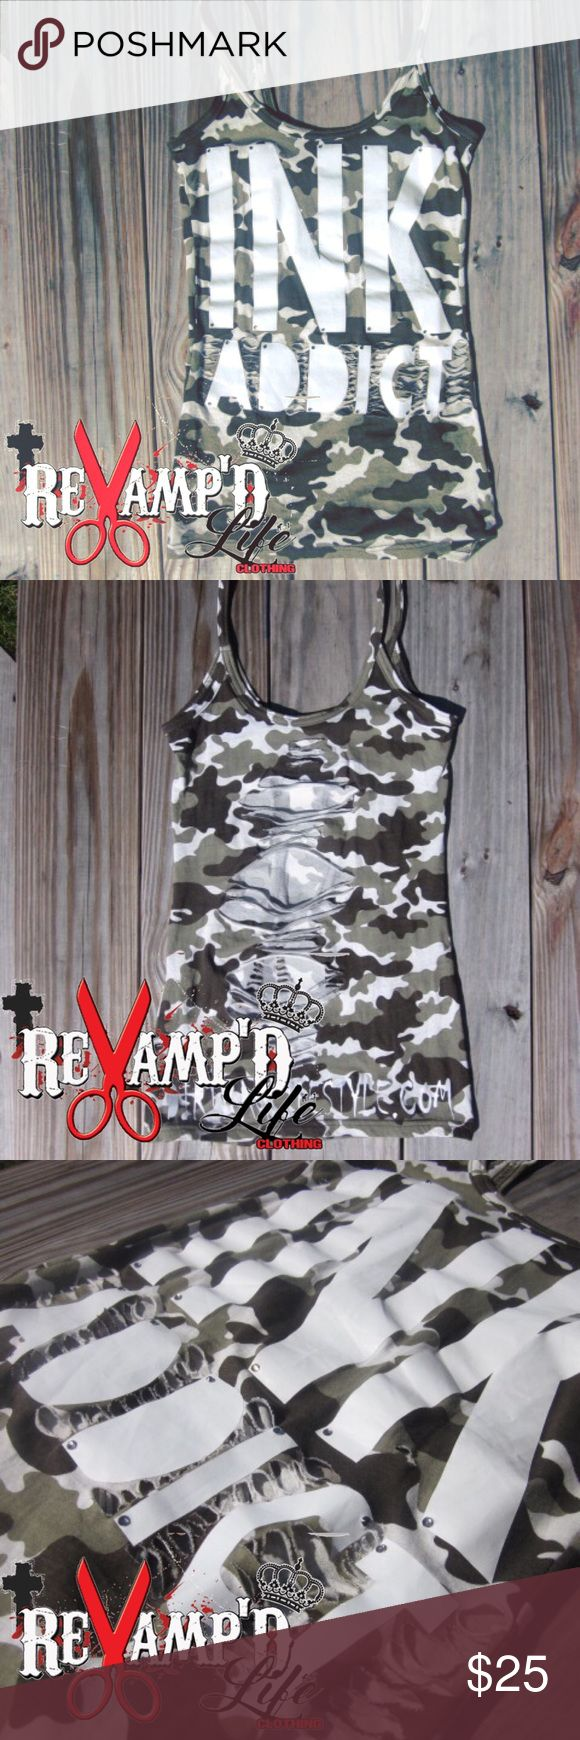 Custom bling cut up INK ADDICT CAMO tank top SMALL •• 🛍 Ask for bundles to save $$ ••• always accepting offers! 🛍 ••  • this cute Camouflage spaghetti strap tank is cut up, and belonged out. (pictures do no justice for either) it is somewhat stretchy and looks great when worn! The back is completely cut up.   • size: small   #inkaddict #camouflage #tanktop #stretchy #cute #handmade #tattedup #customclothing #bling #oneofakind #revamped #reconstructed #ripped #reworked #restyled  #redone…